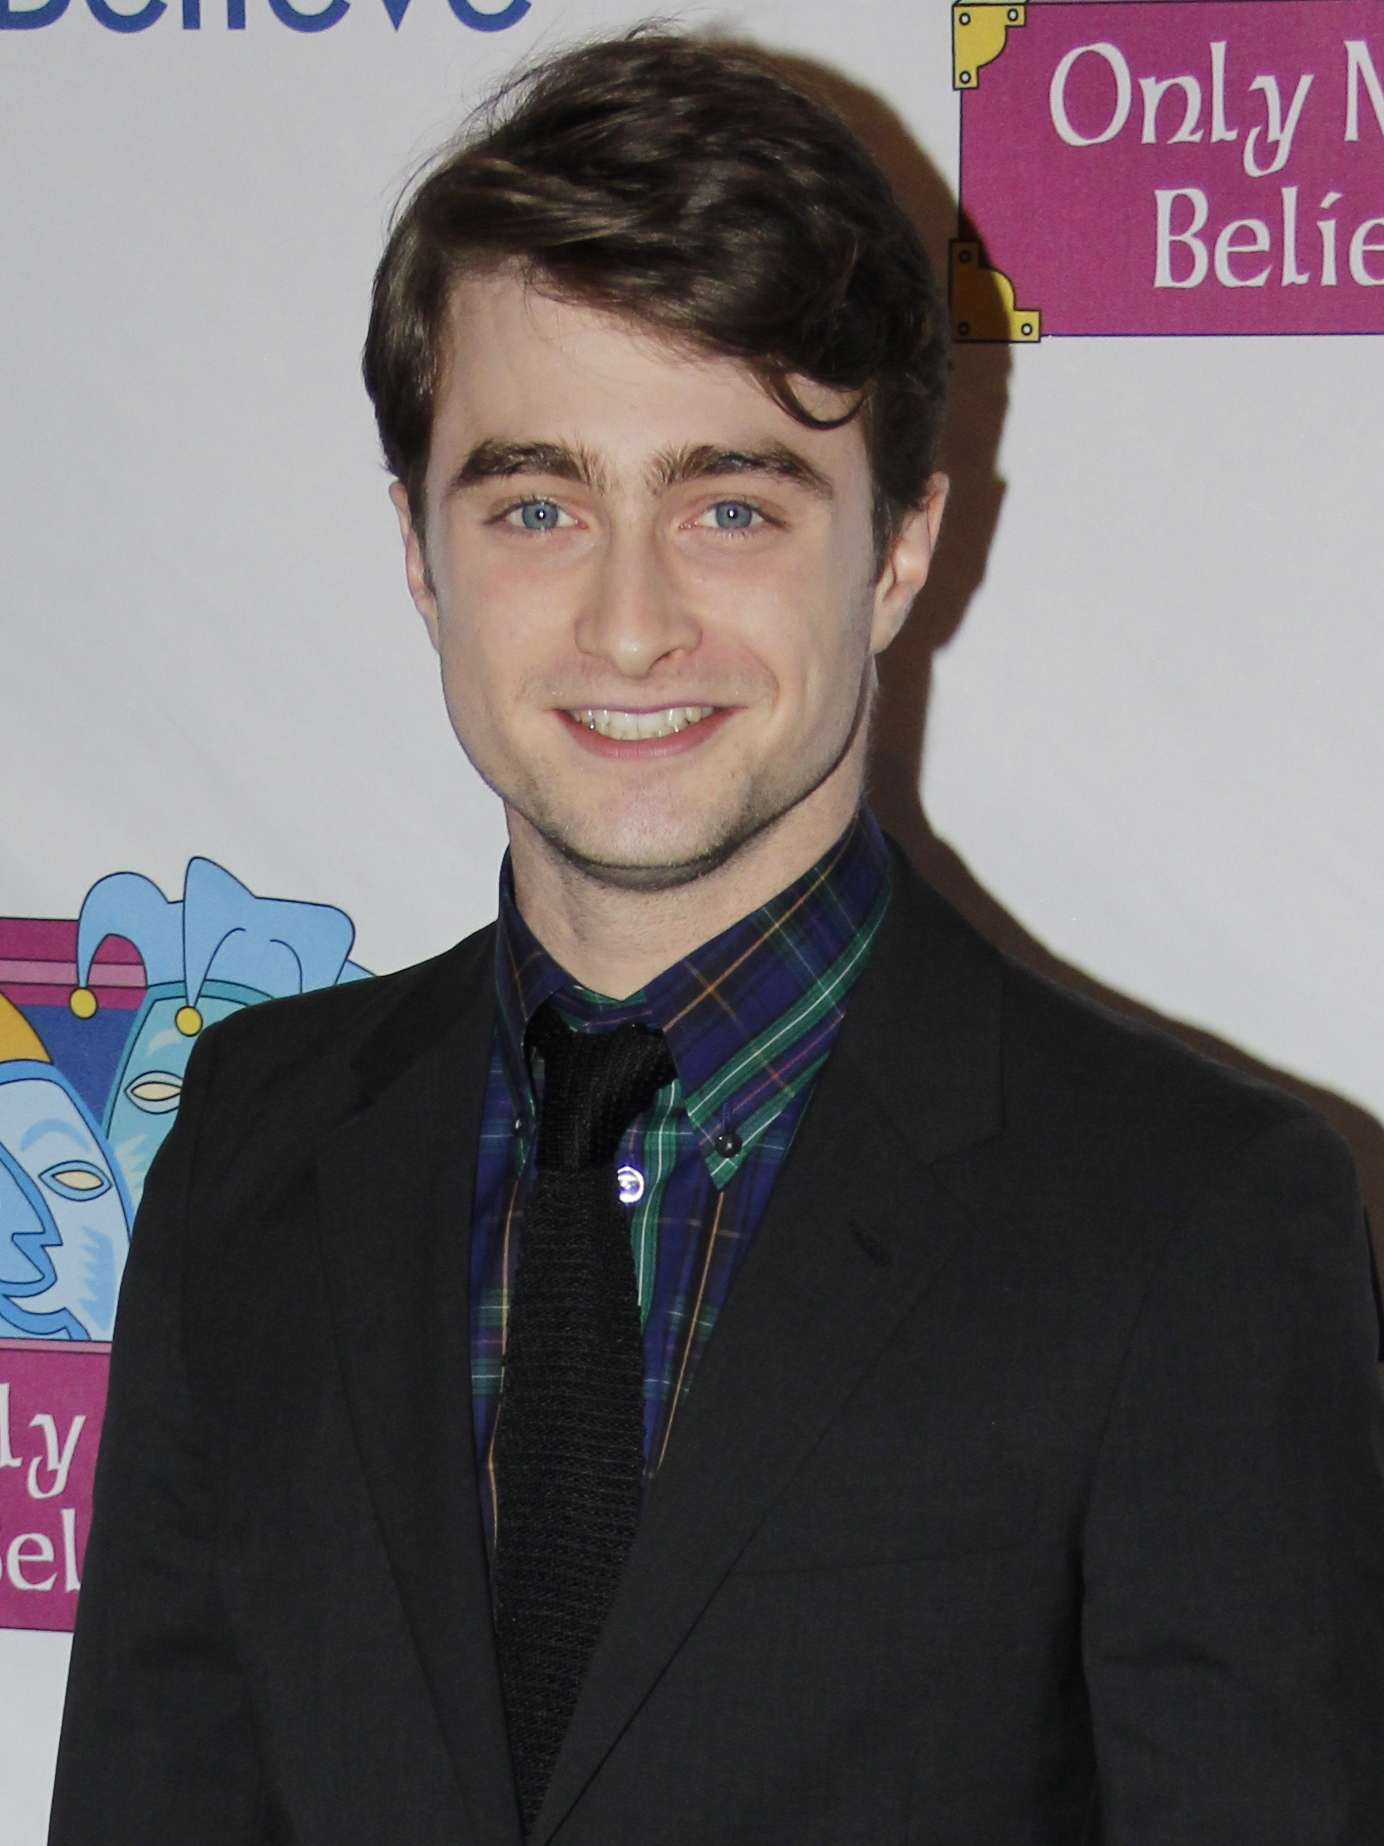 Daniel_Radcliffe_2011_(Straighten_Colors)